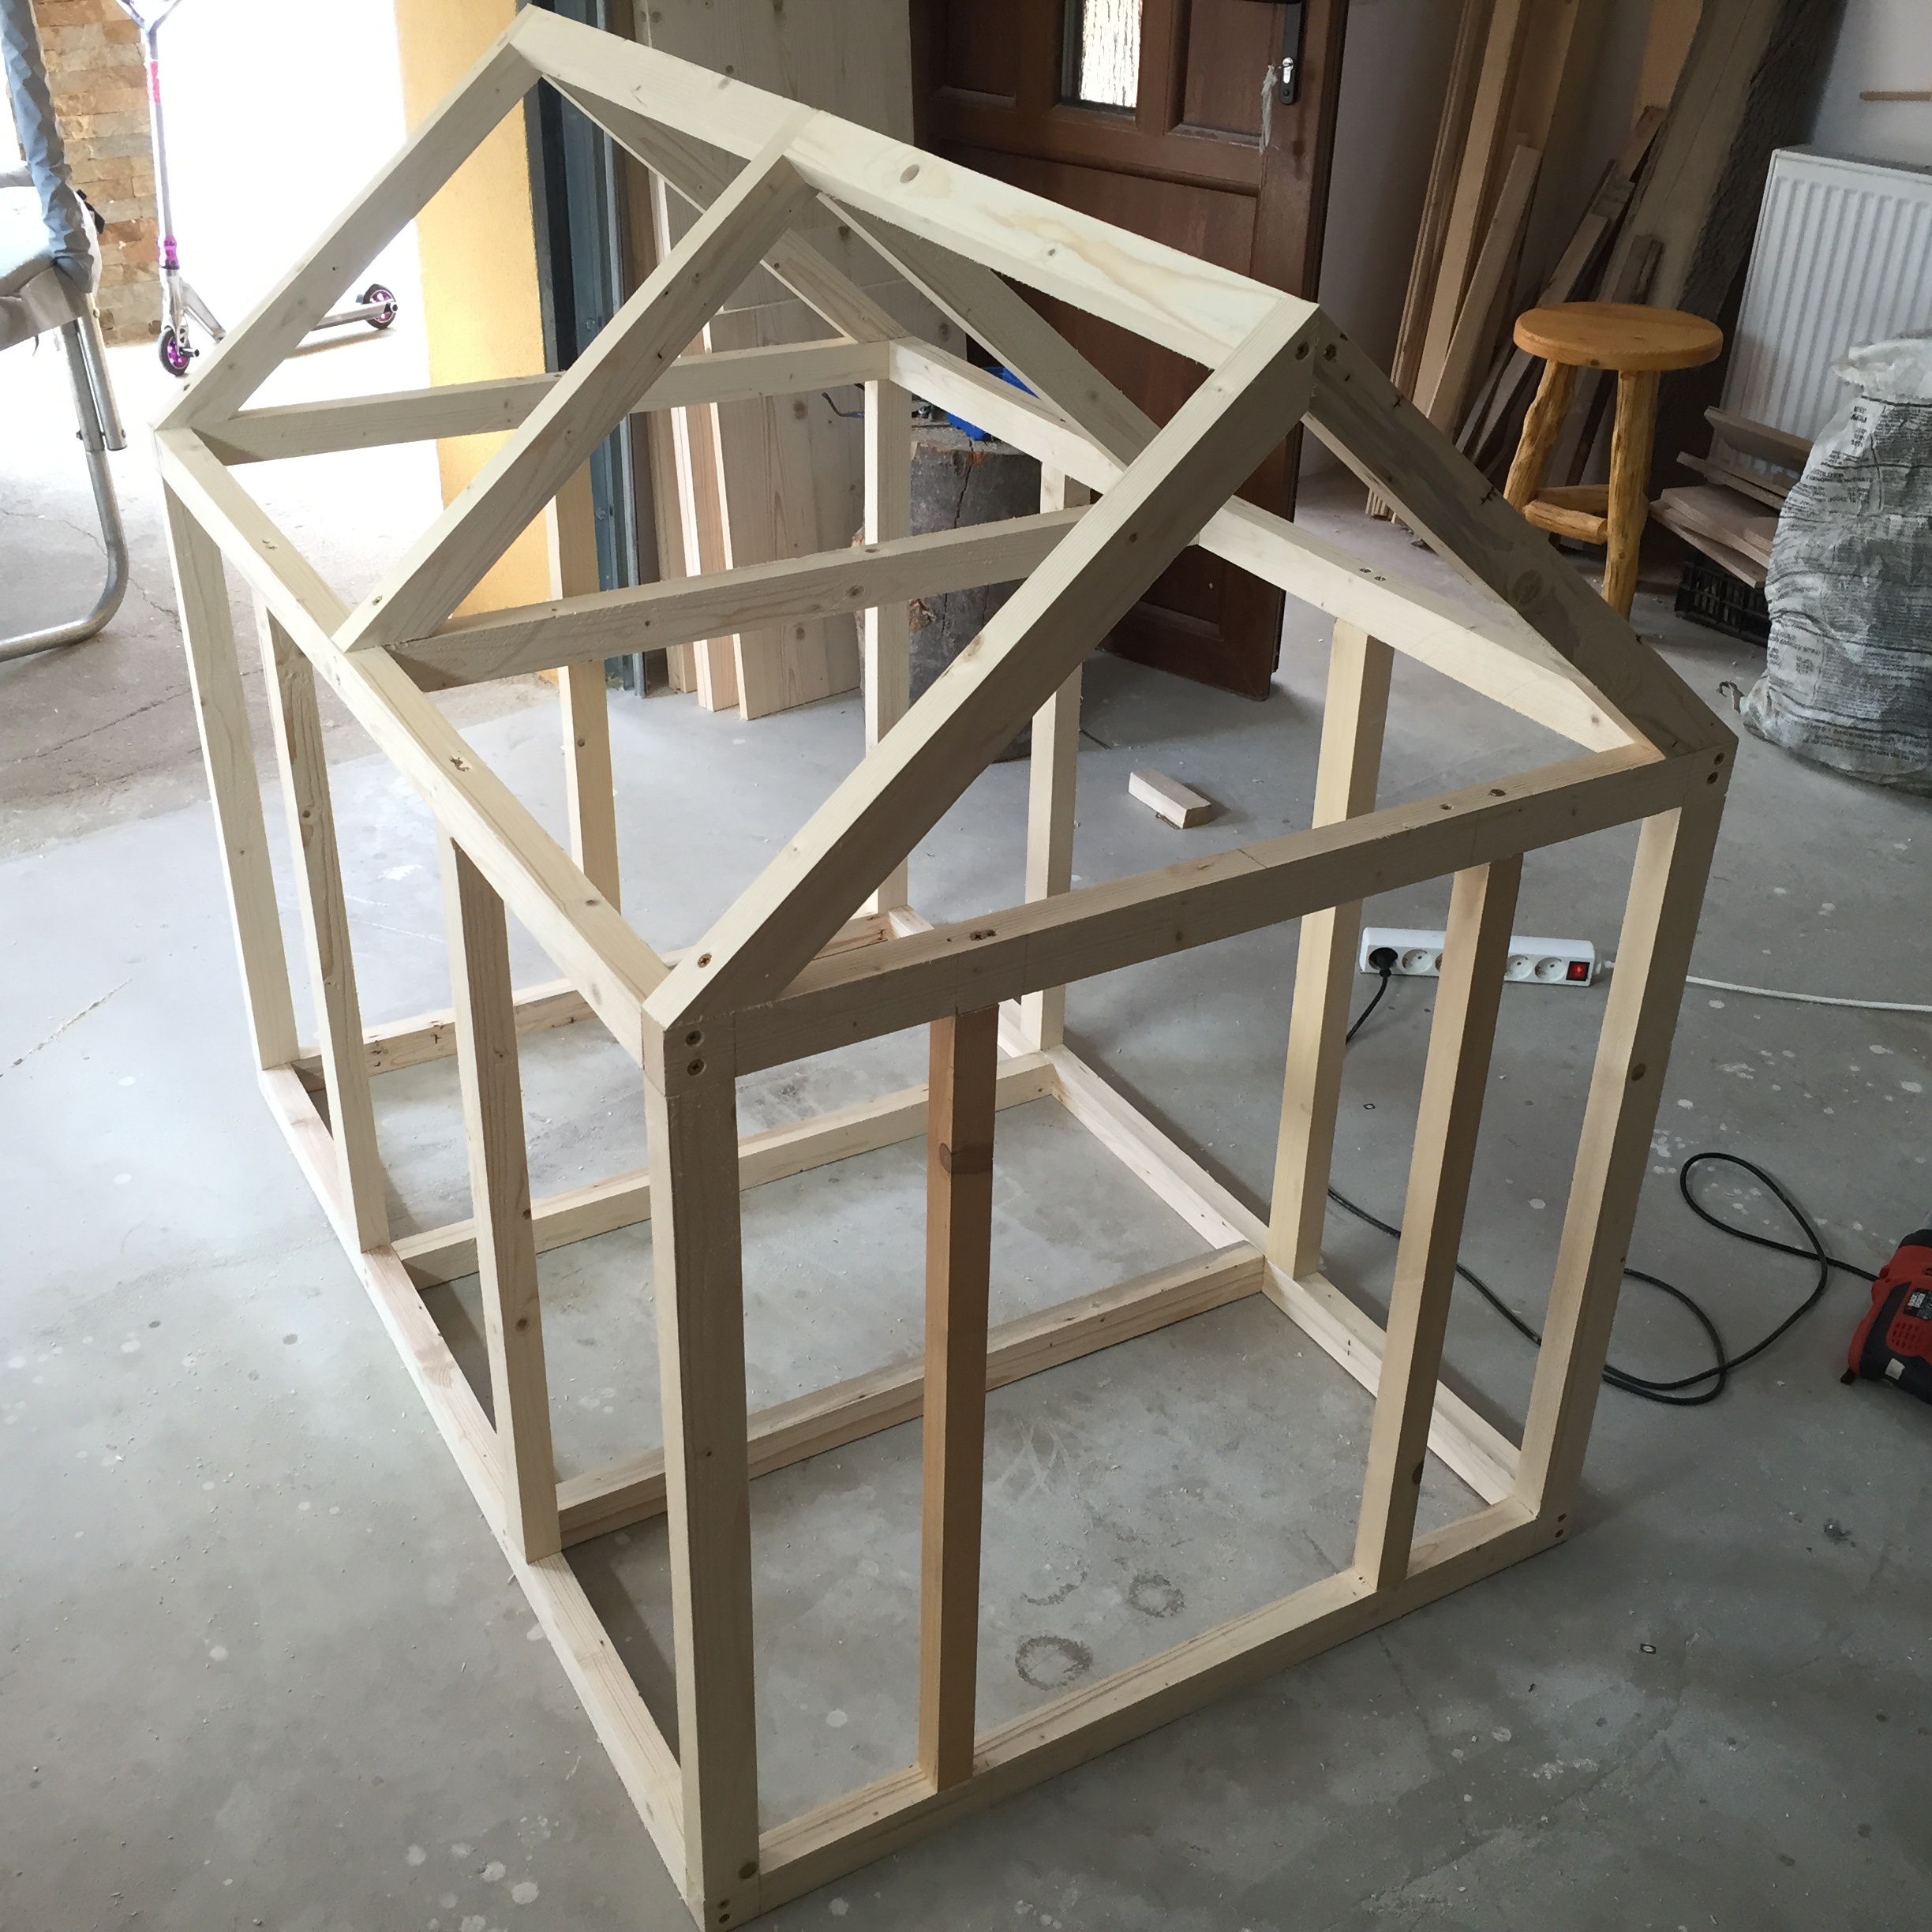 Image Result For Homemade Dog House